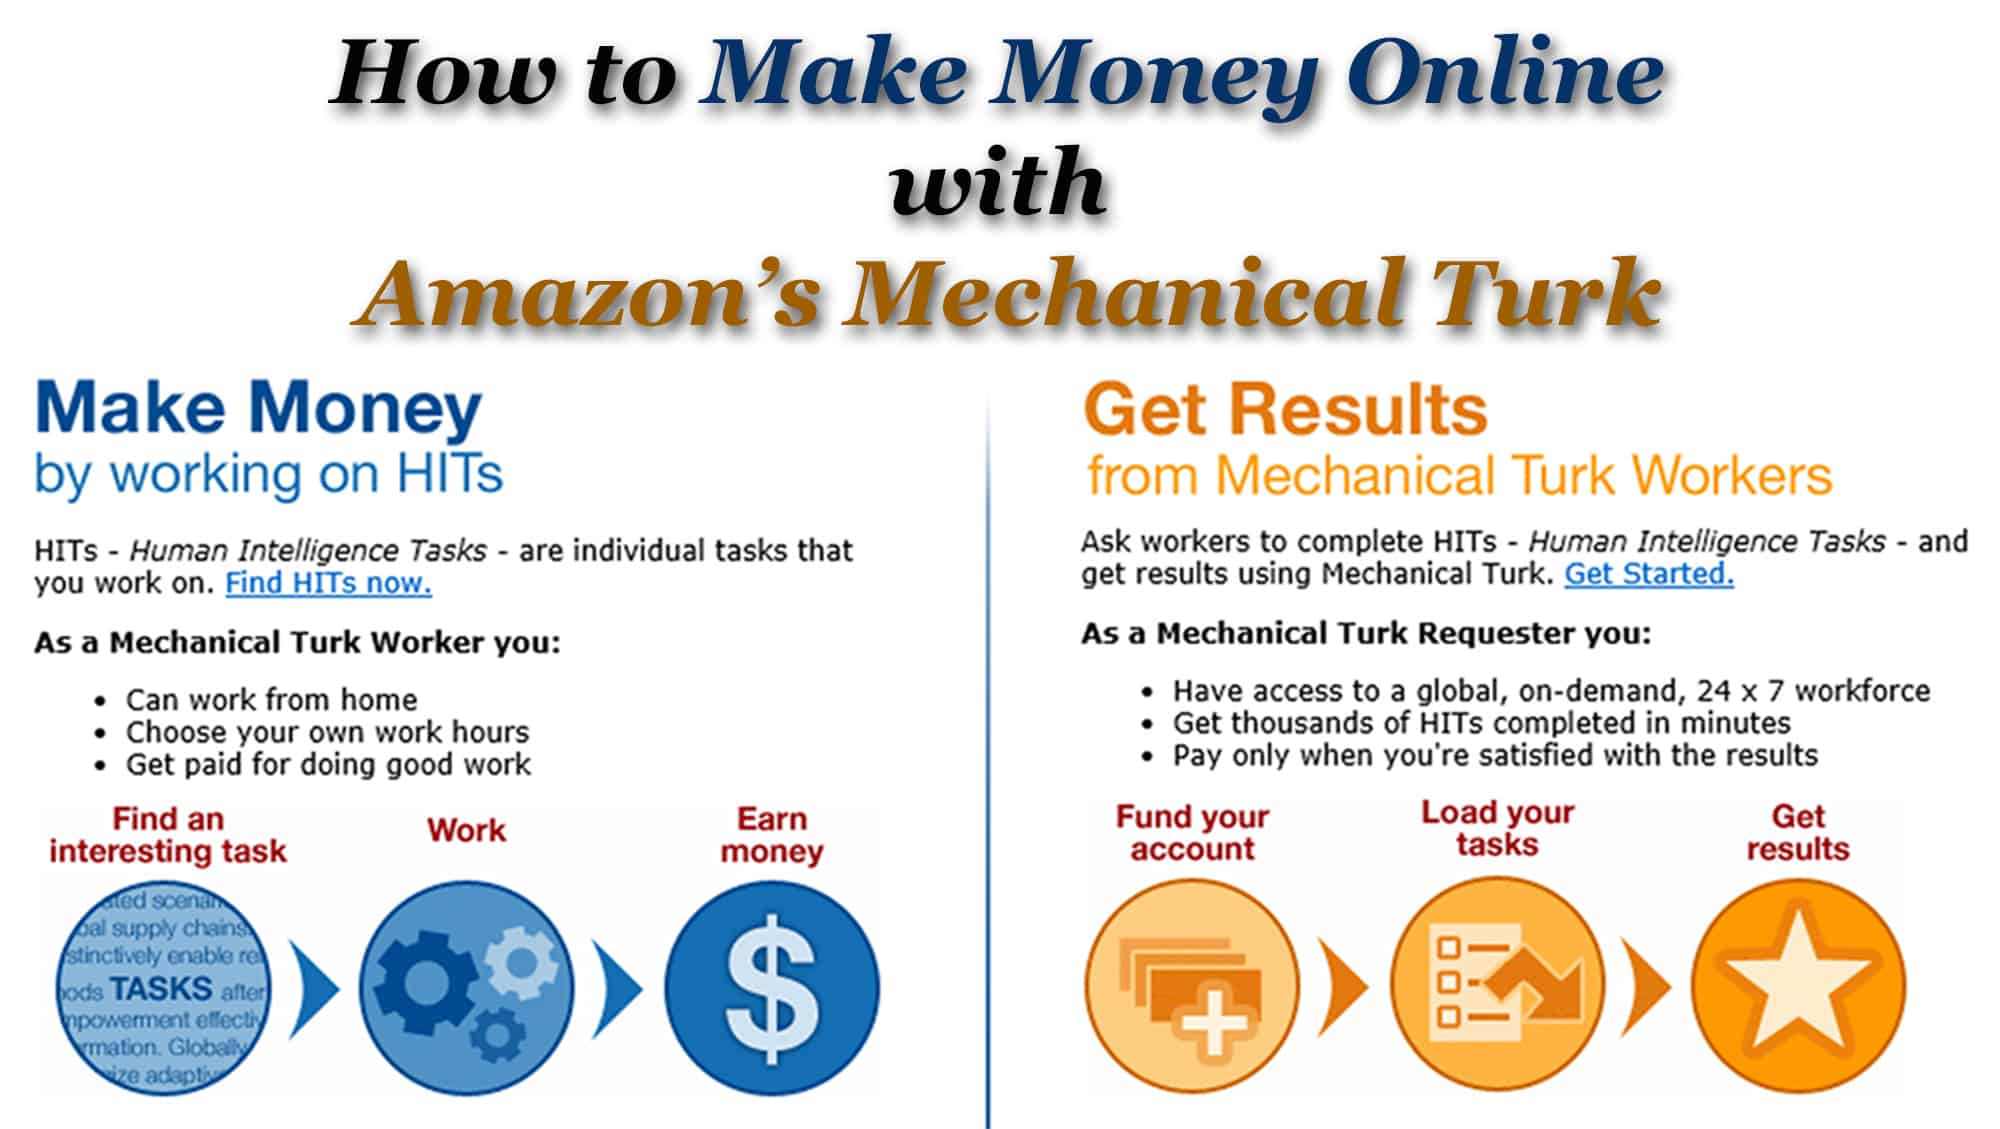 How to Make Money Online with Amazon's Mechanical Turk!